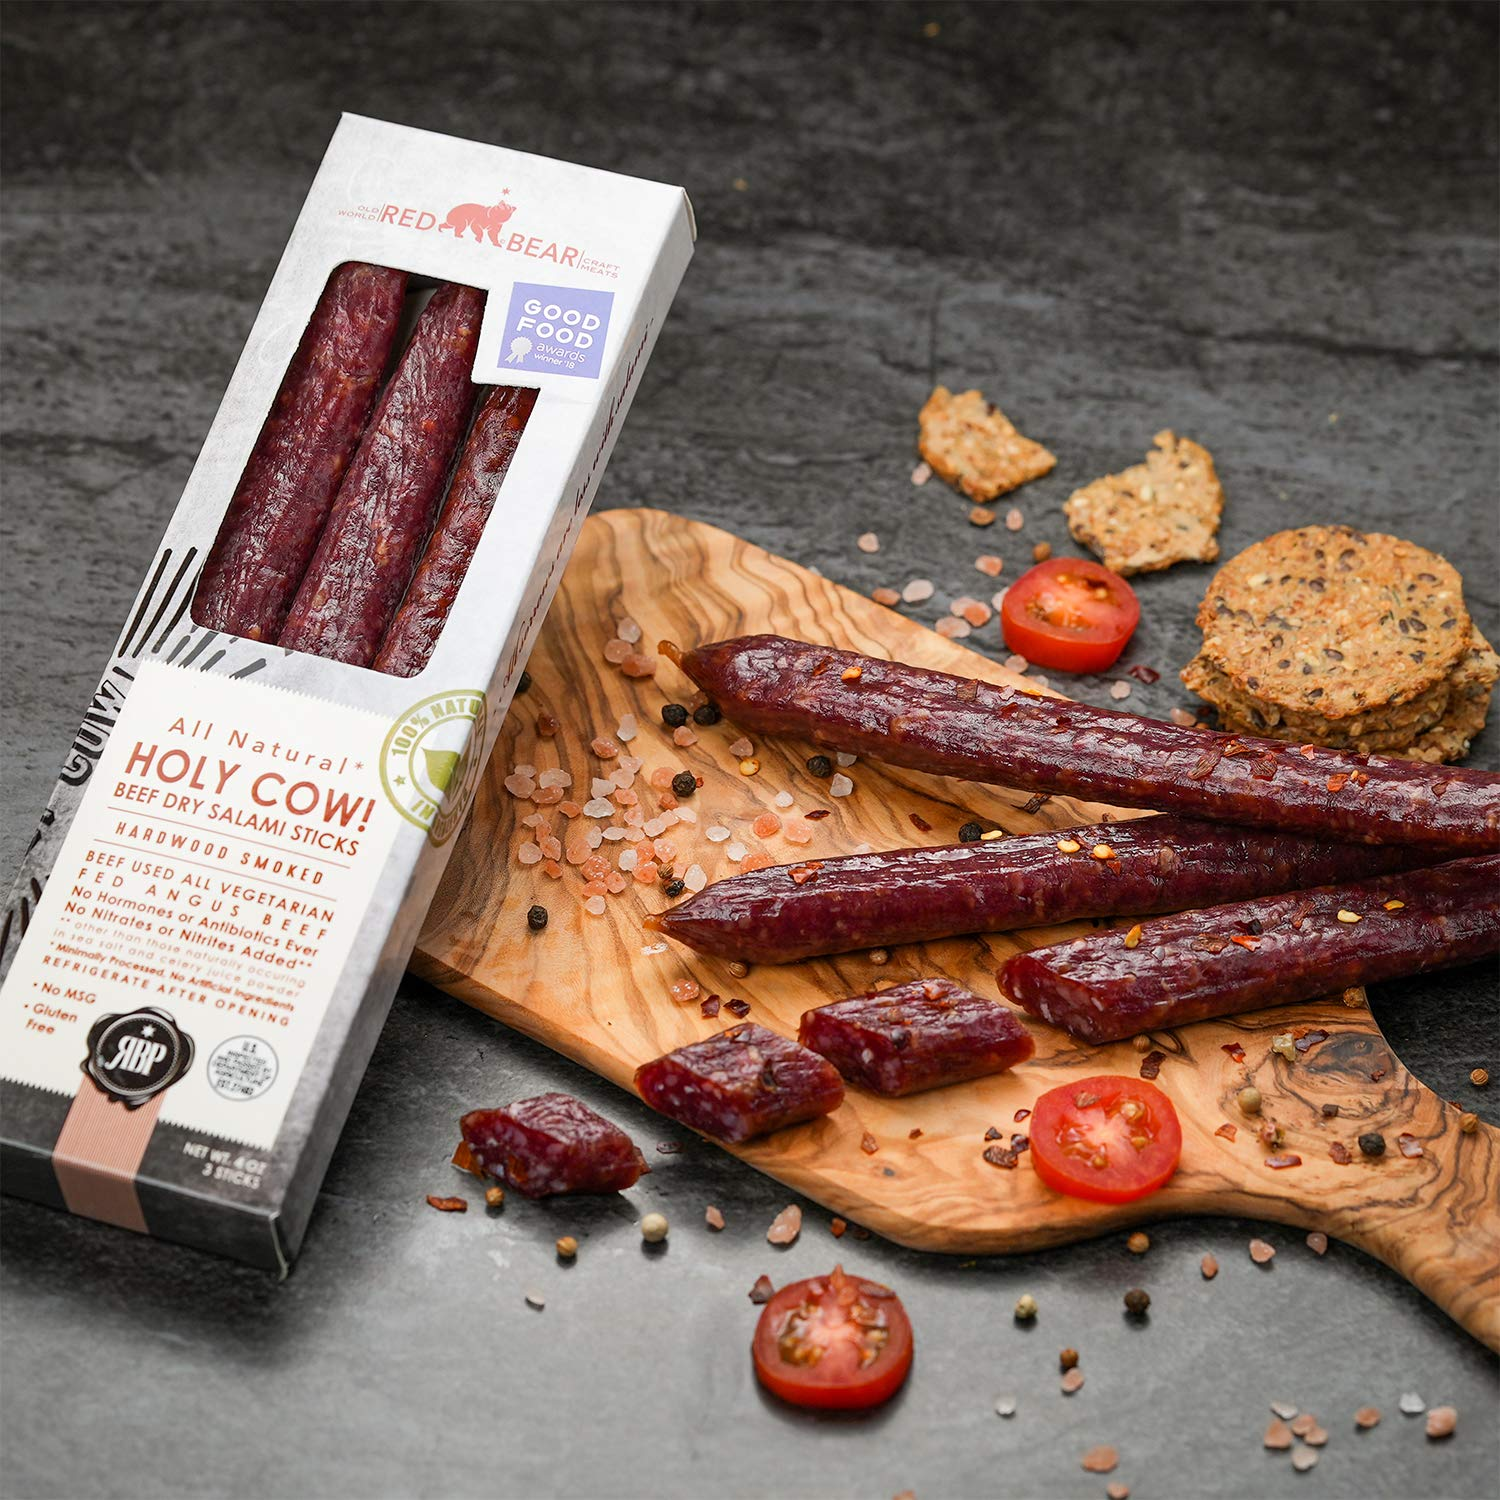 Holy Cow - Beef Jerky Keto Friendly Snacks – 4 oz – Premium All Natural Dry Salami Sticks - No MSG Gluten Free Low Carb Keto Diet Food – Made in the USA